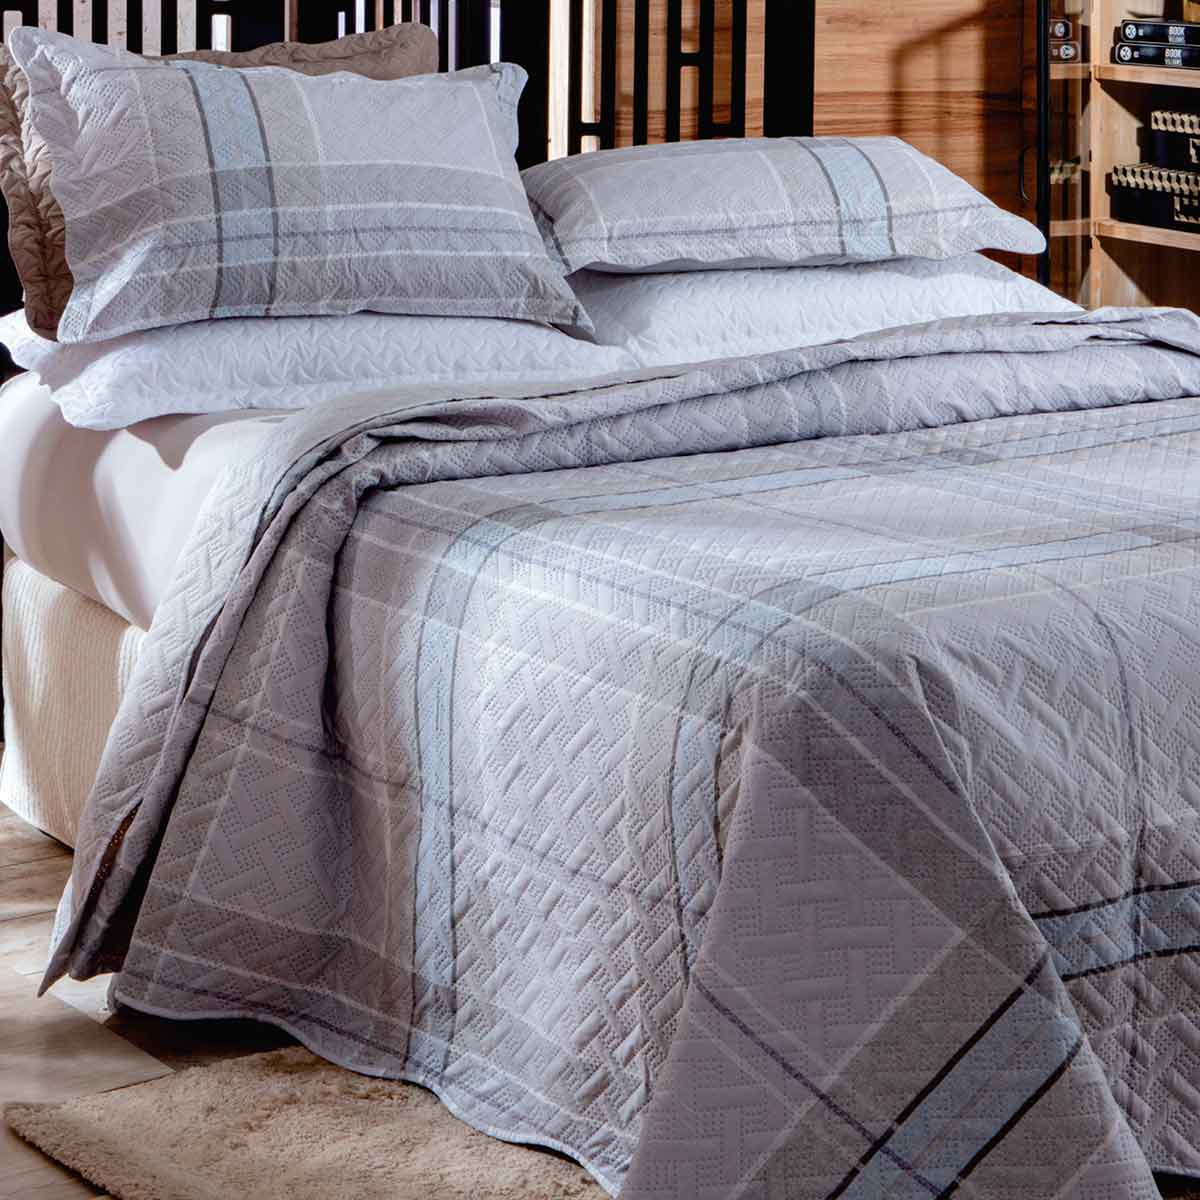 Cobreleito Patchwork Ultra Solteiro 2Pcs London Bristol 5